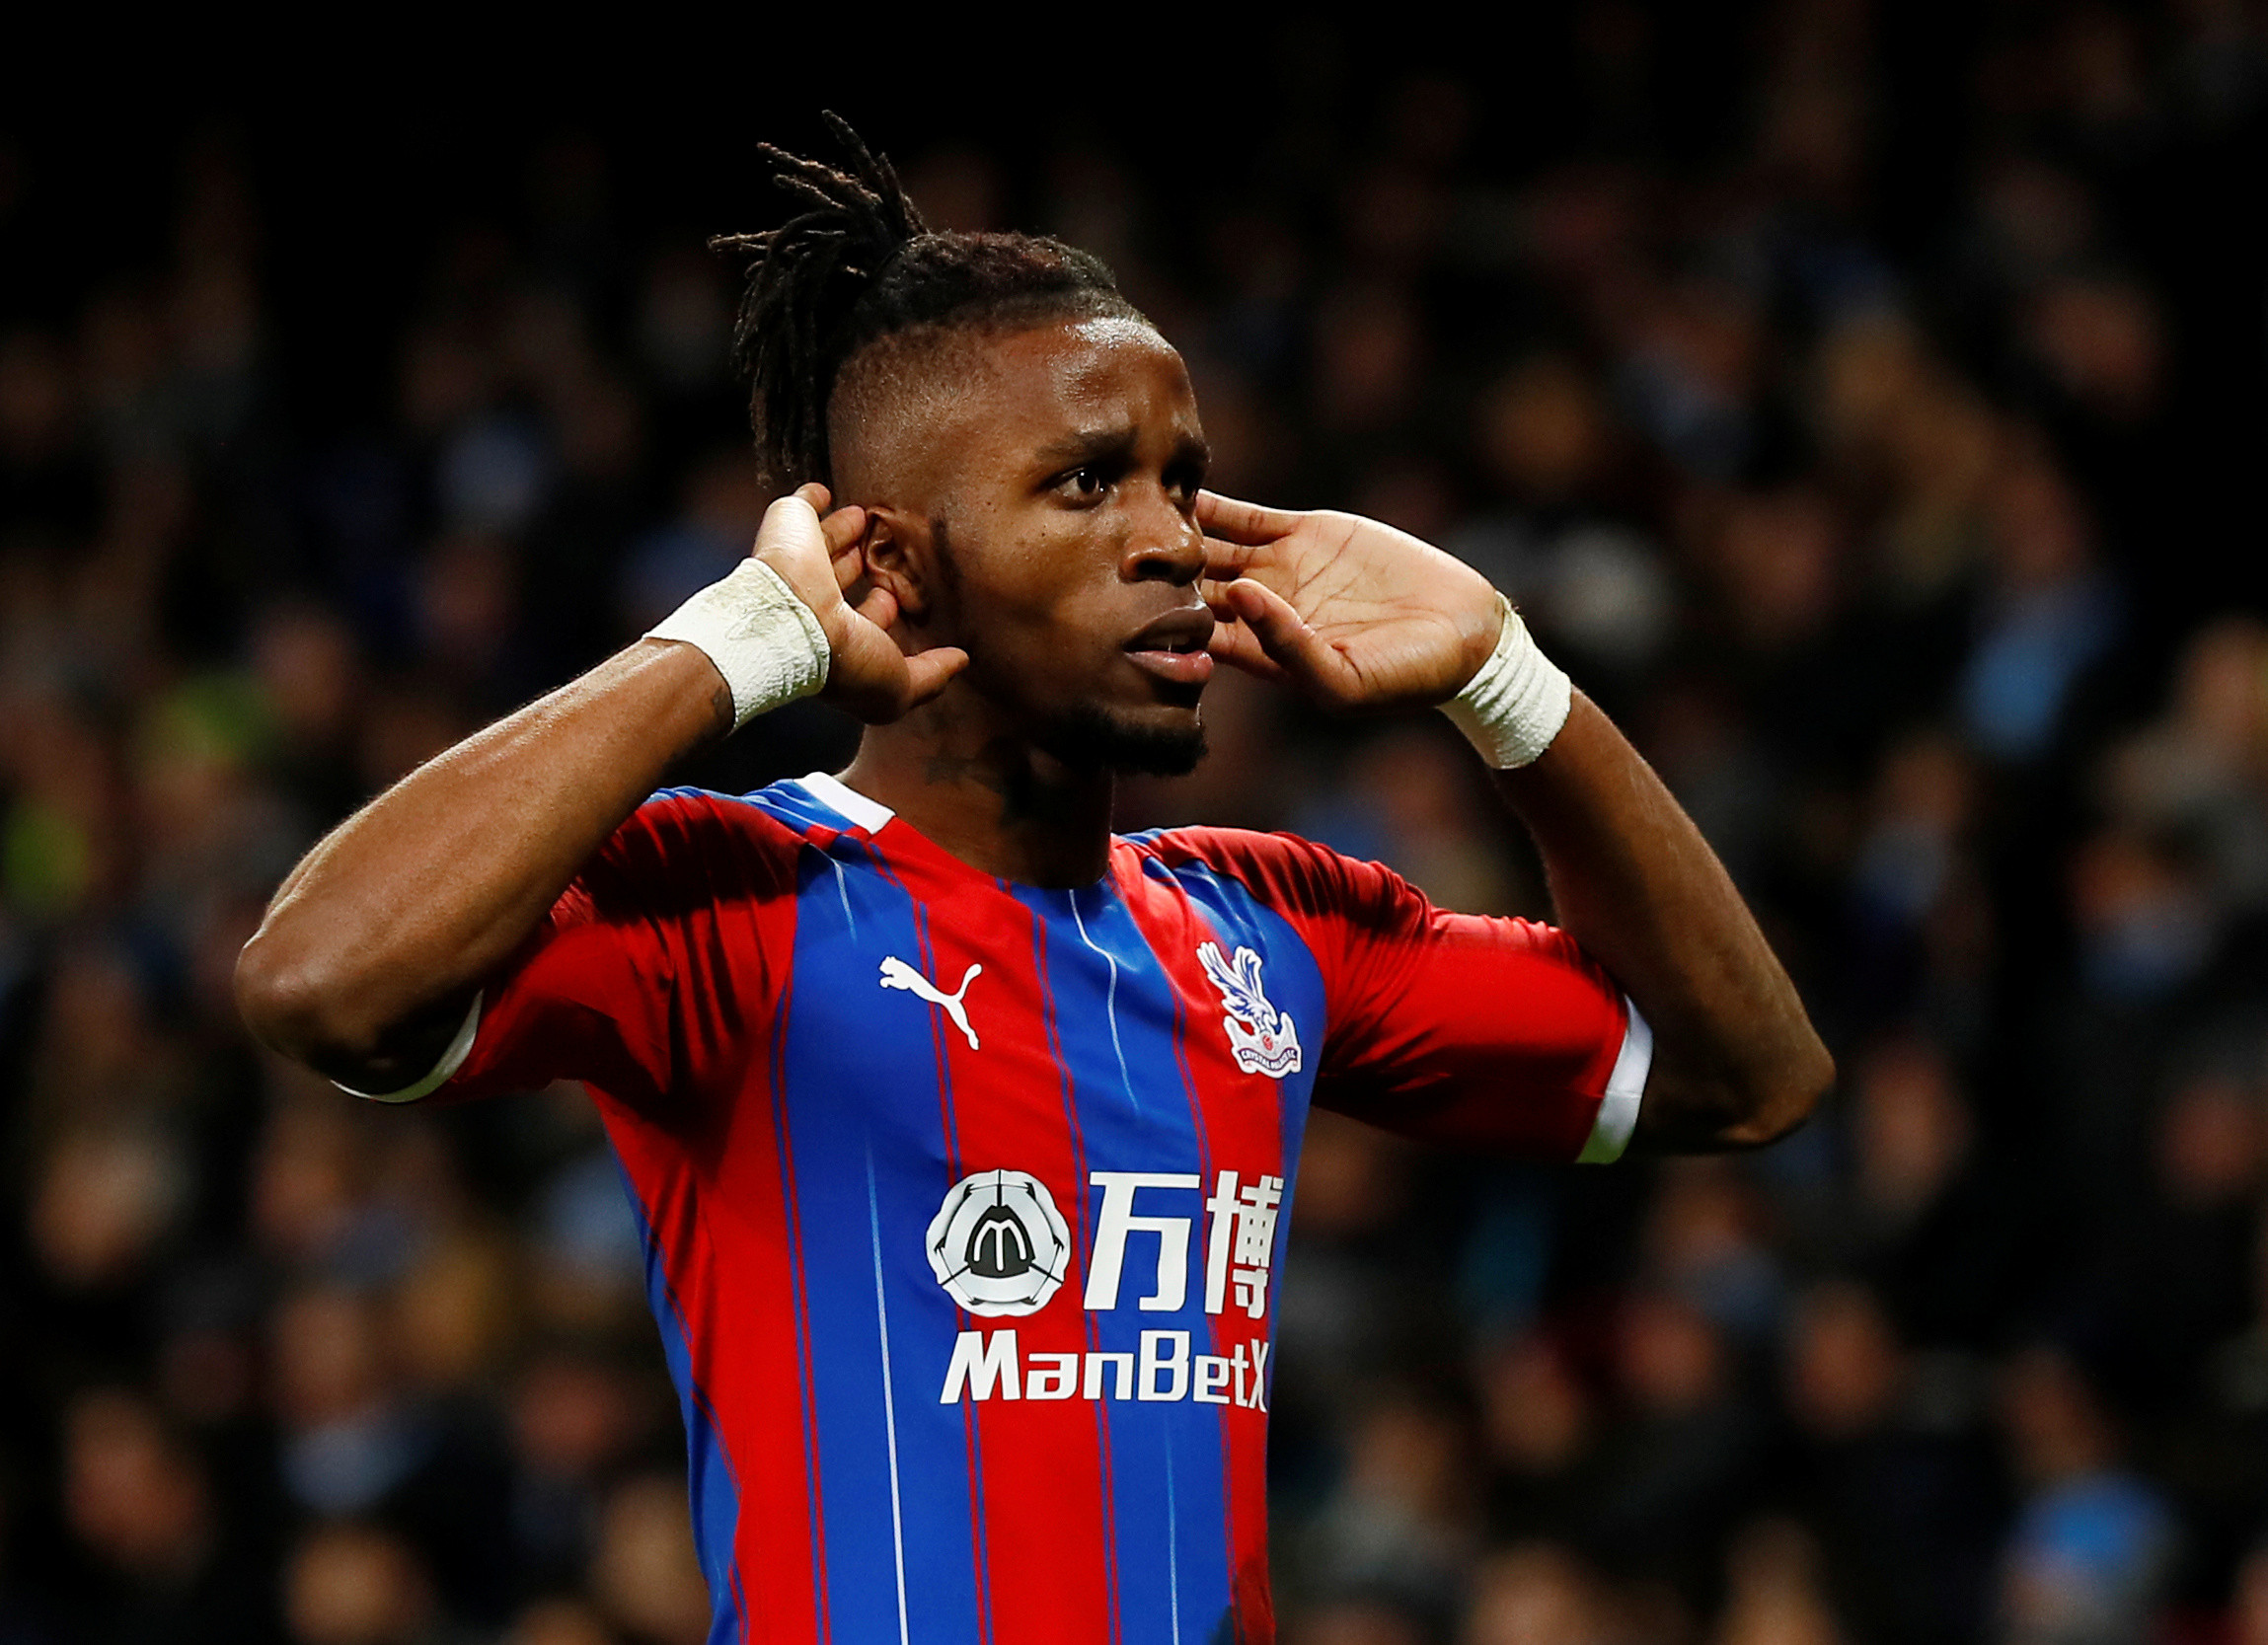 Crystal Palace's Wilfried Zaha to compete in ePremier League Invitational championship - Sports Leo